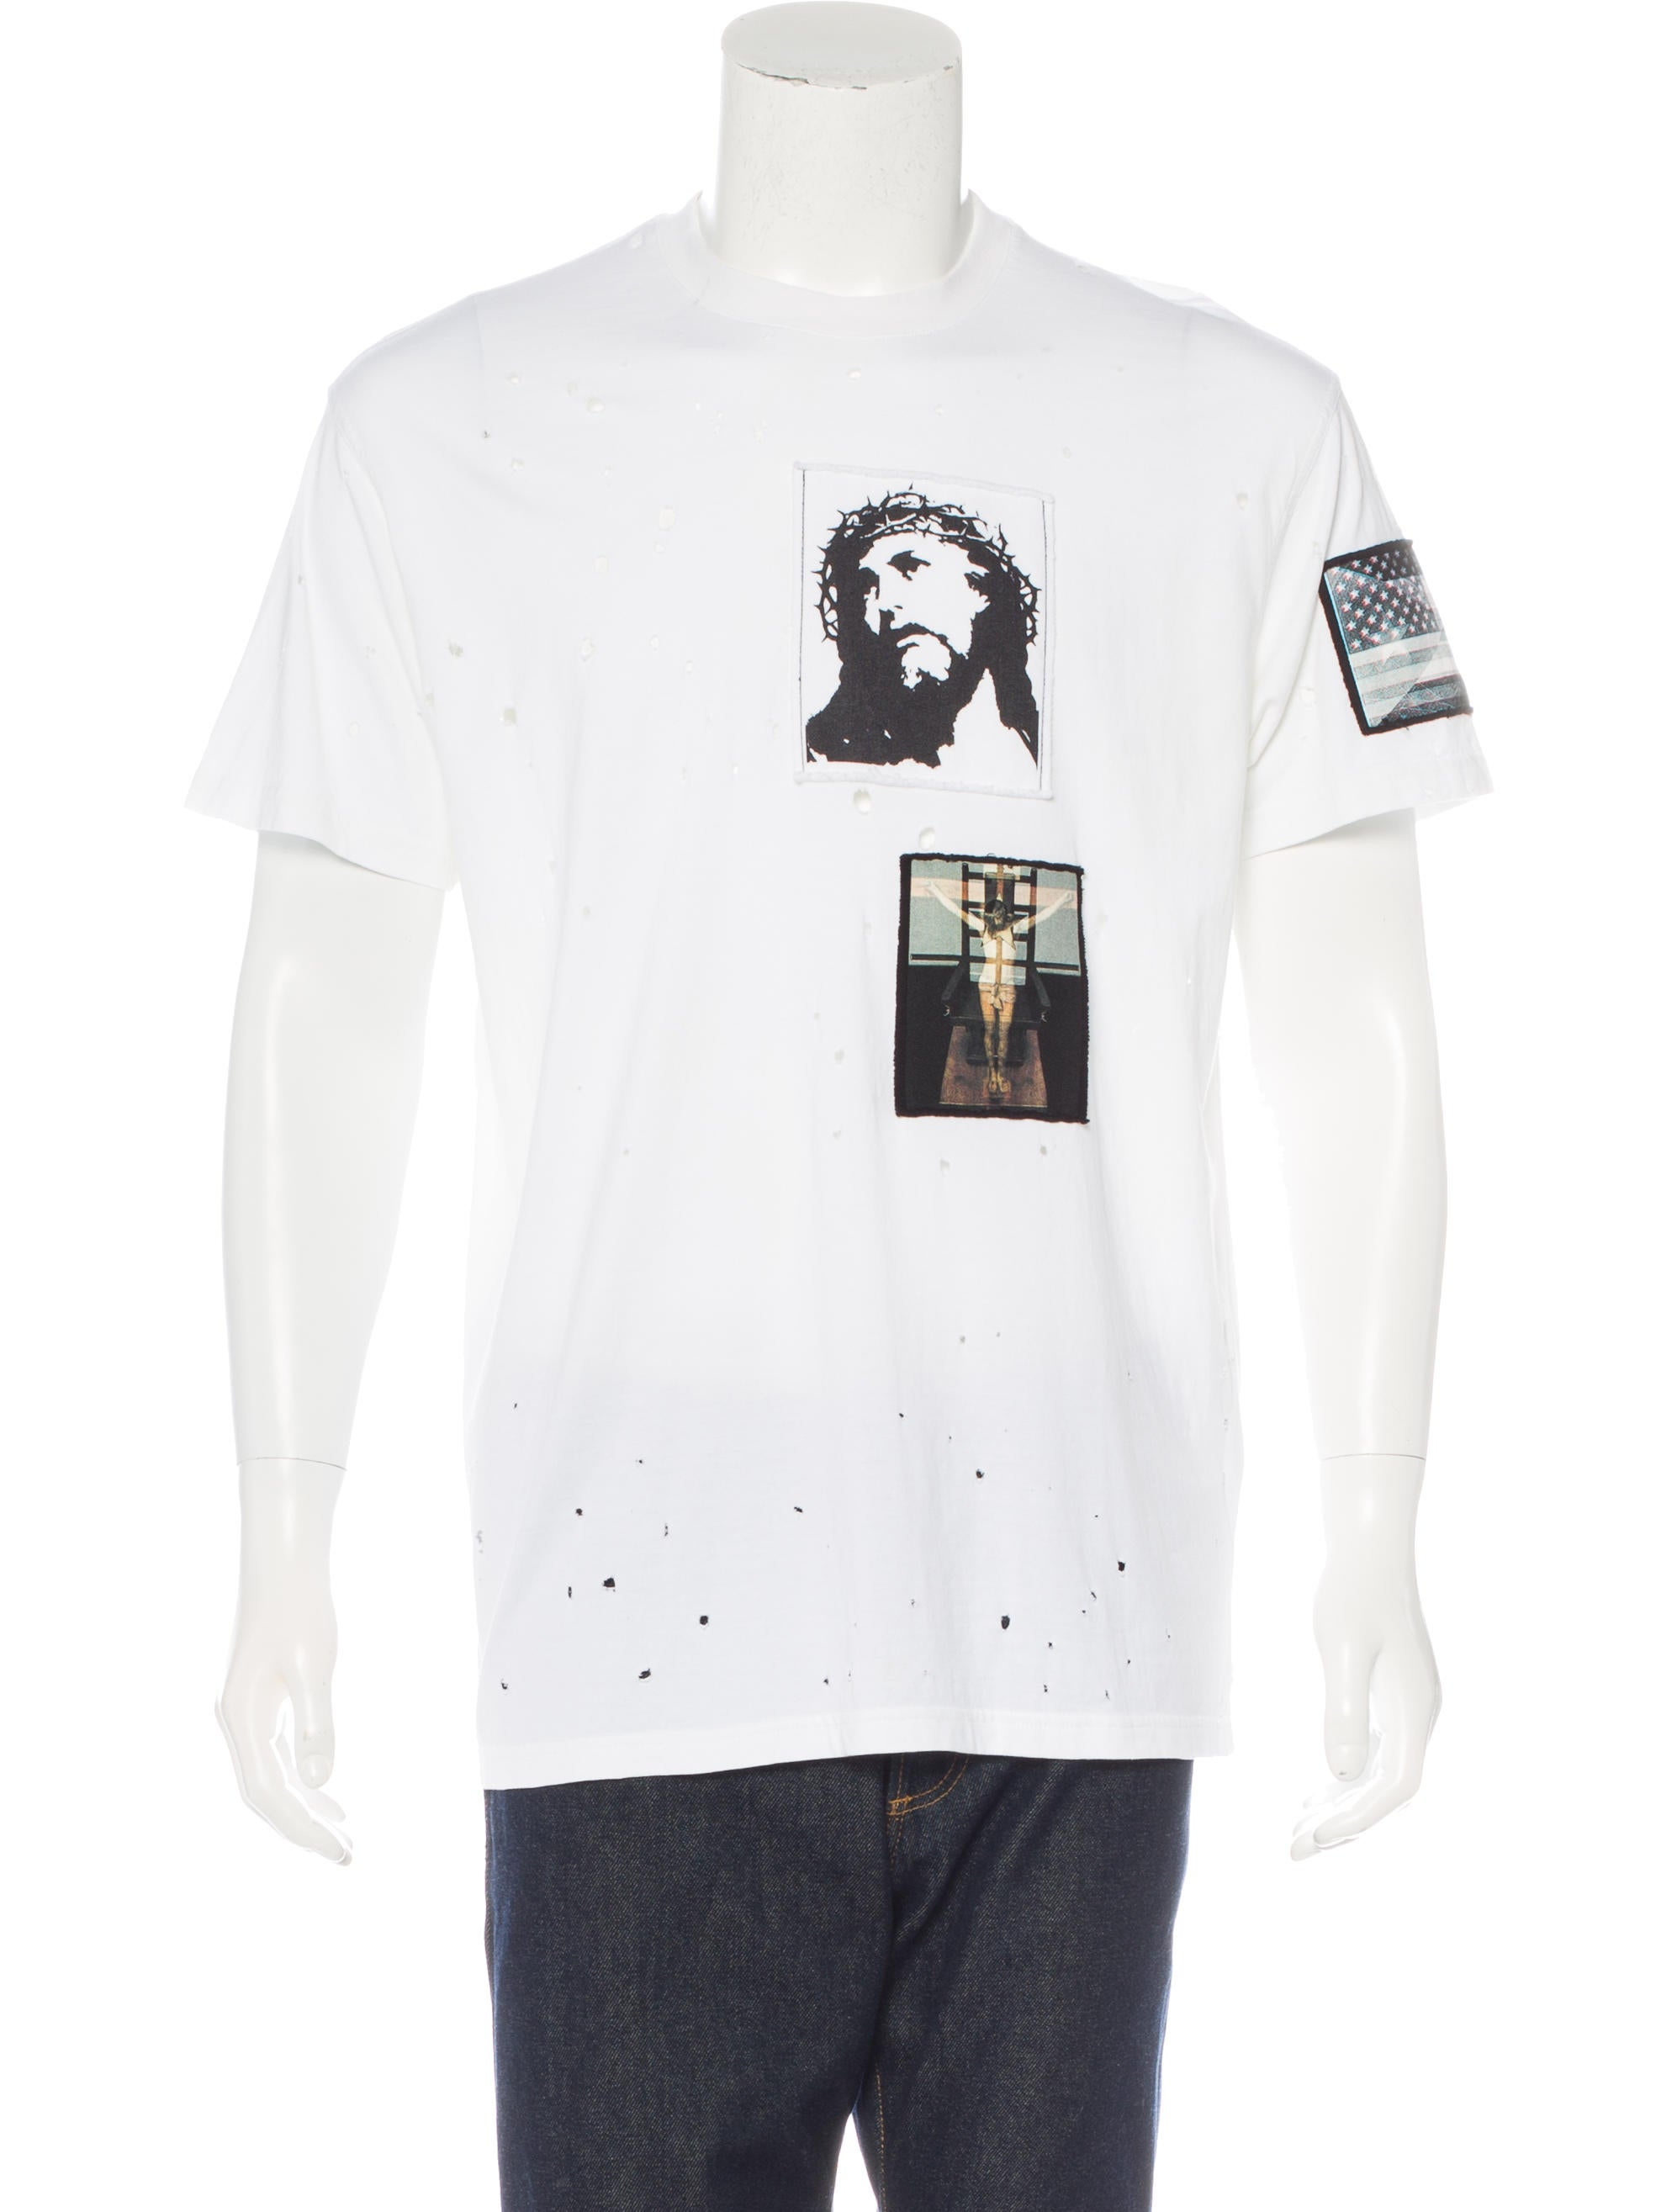 Givenchy 2016 distressed crucifixion t shirt clothing Givenchy t shirt price